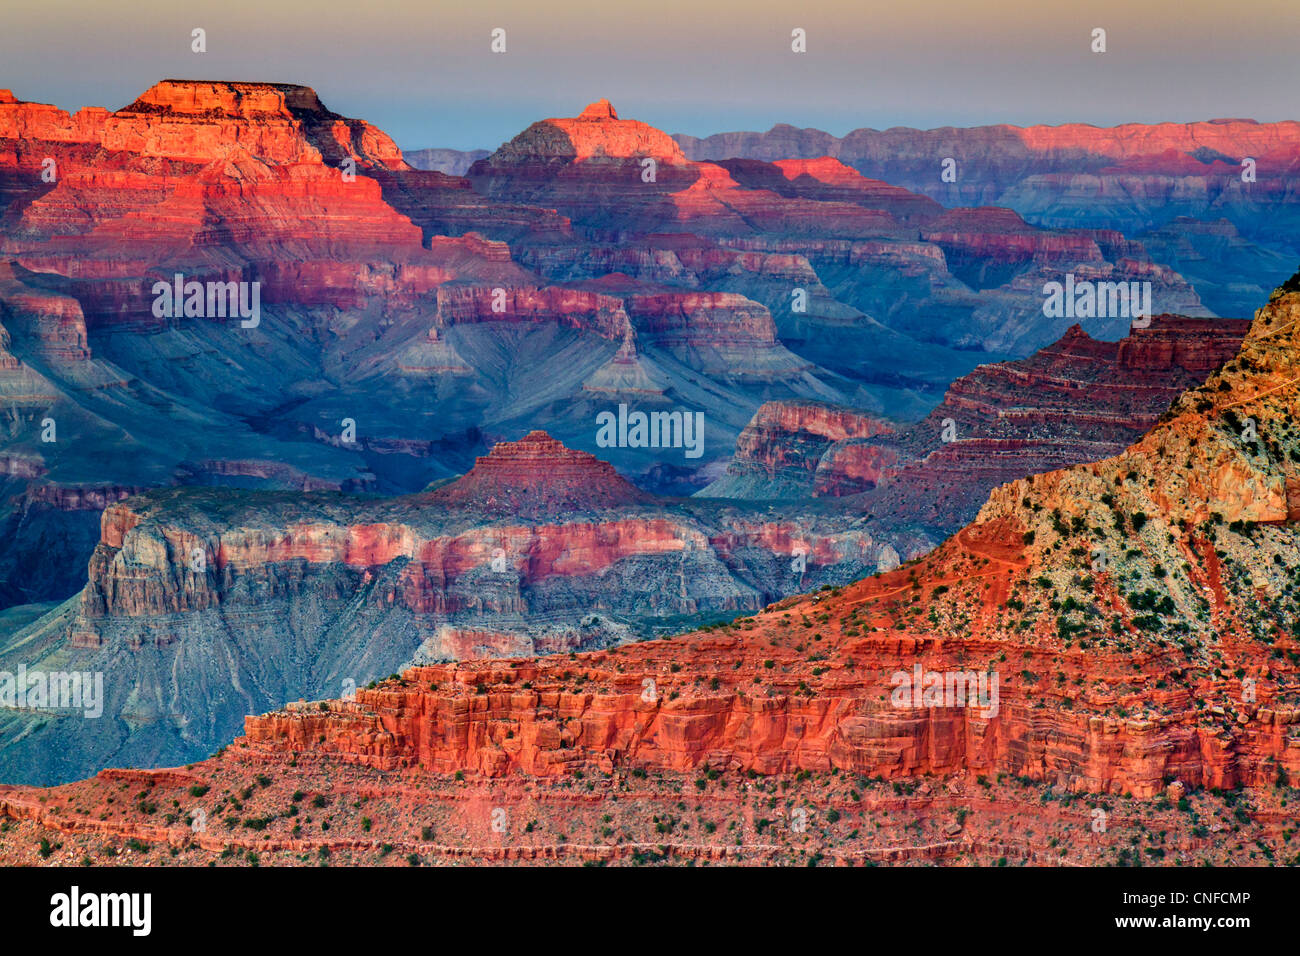 Sonnenuntergang auf Mutter Punkt, South Rim, Grand Canyon National Park (Arizona, USA). HDR-Technik. Stockfoto